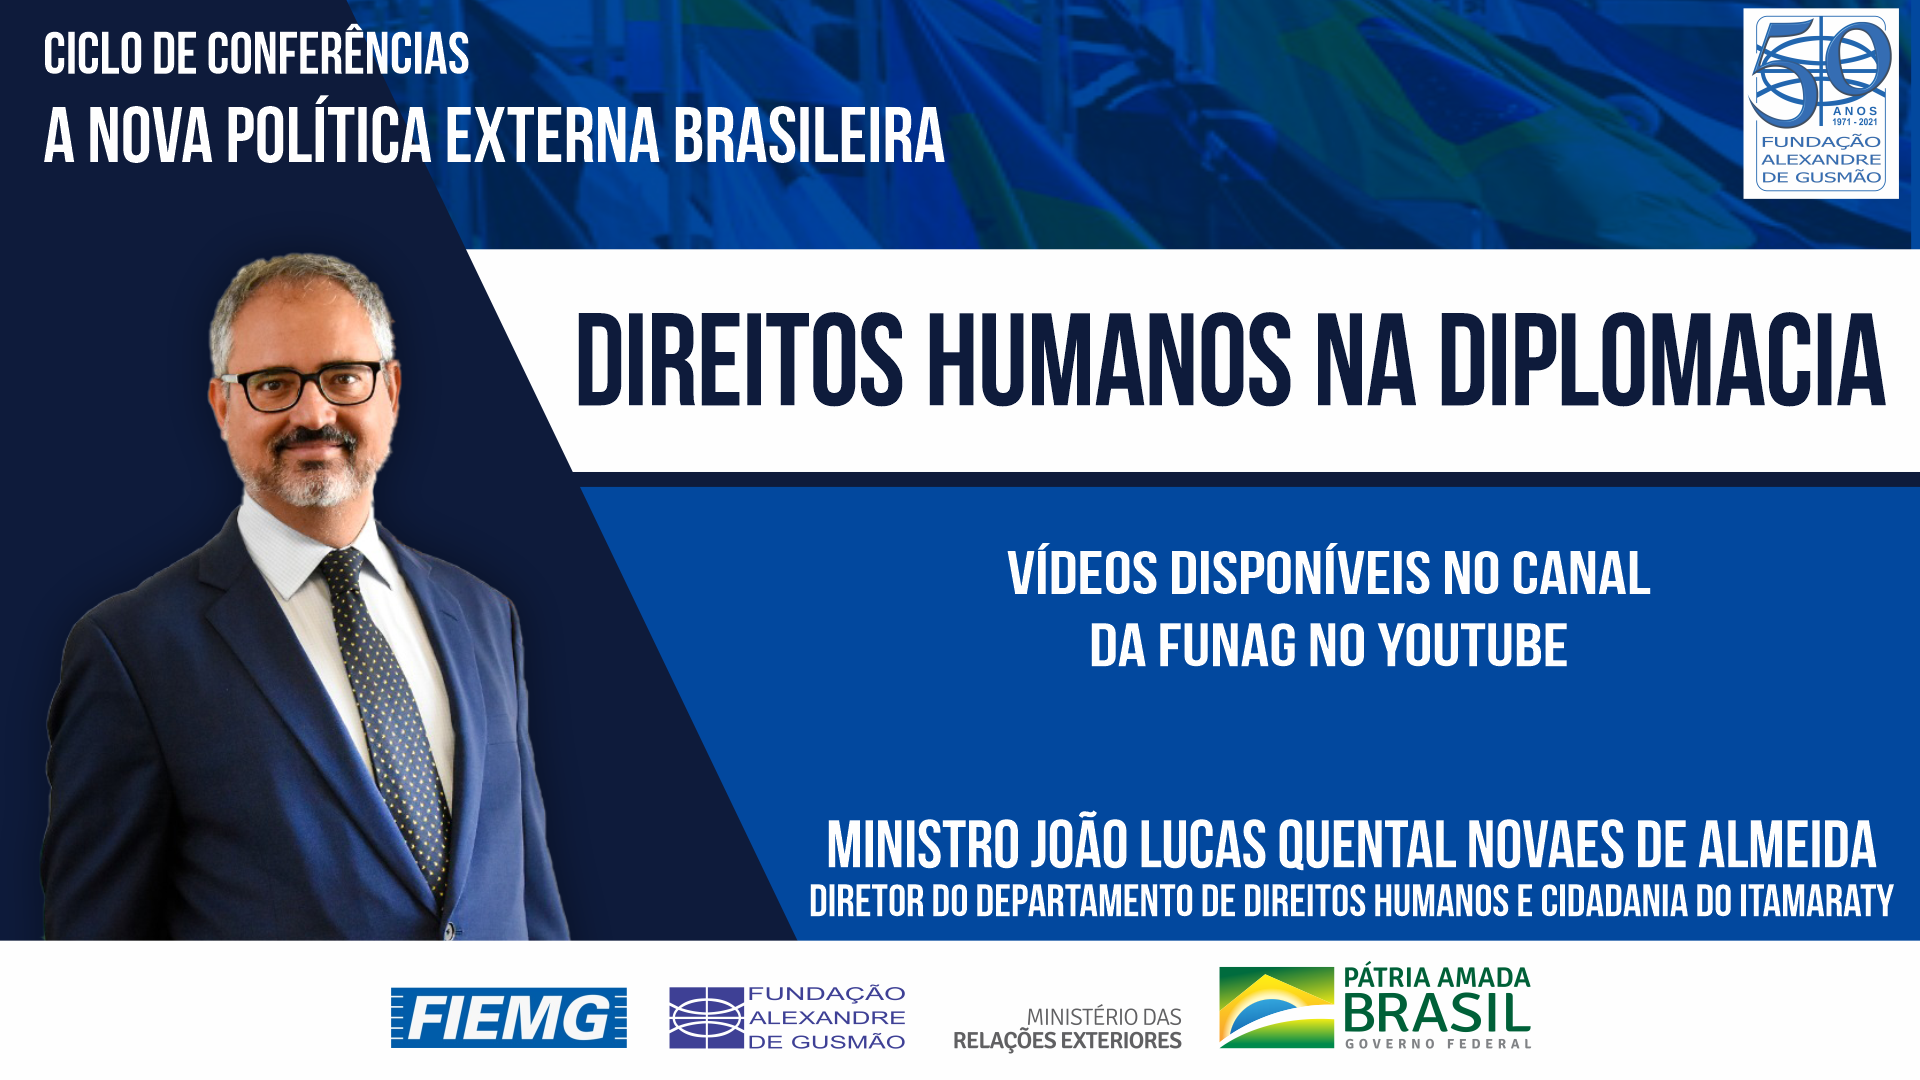 Watch the videos of the conference by the Director of the Department of Human Rights and Citizenship of the Ministry of Foreign Affairs, Minister João Lucas Quental Novaes de Almeida